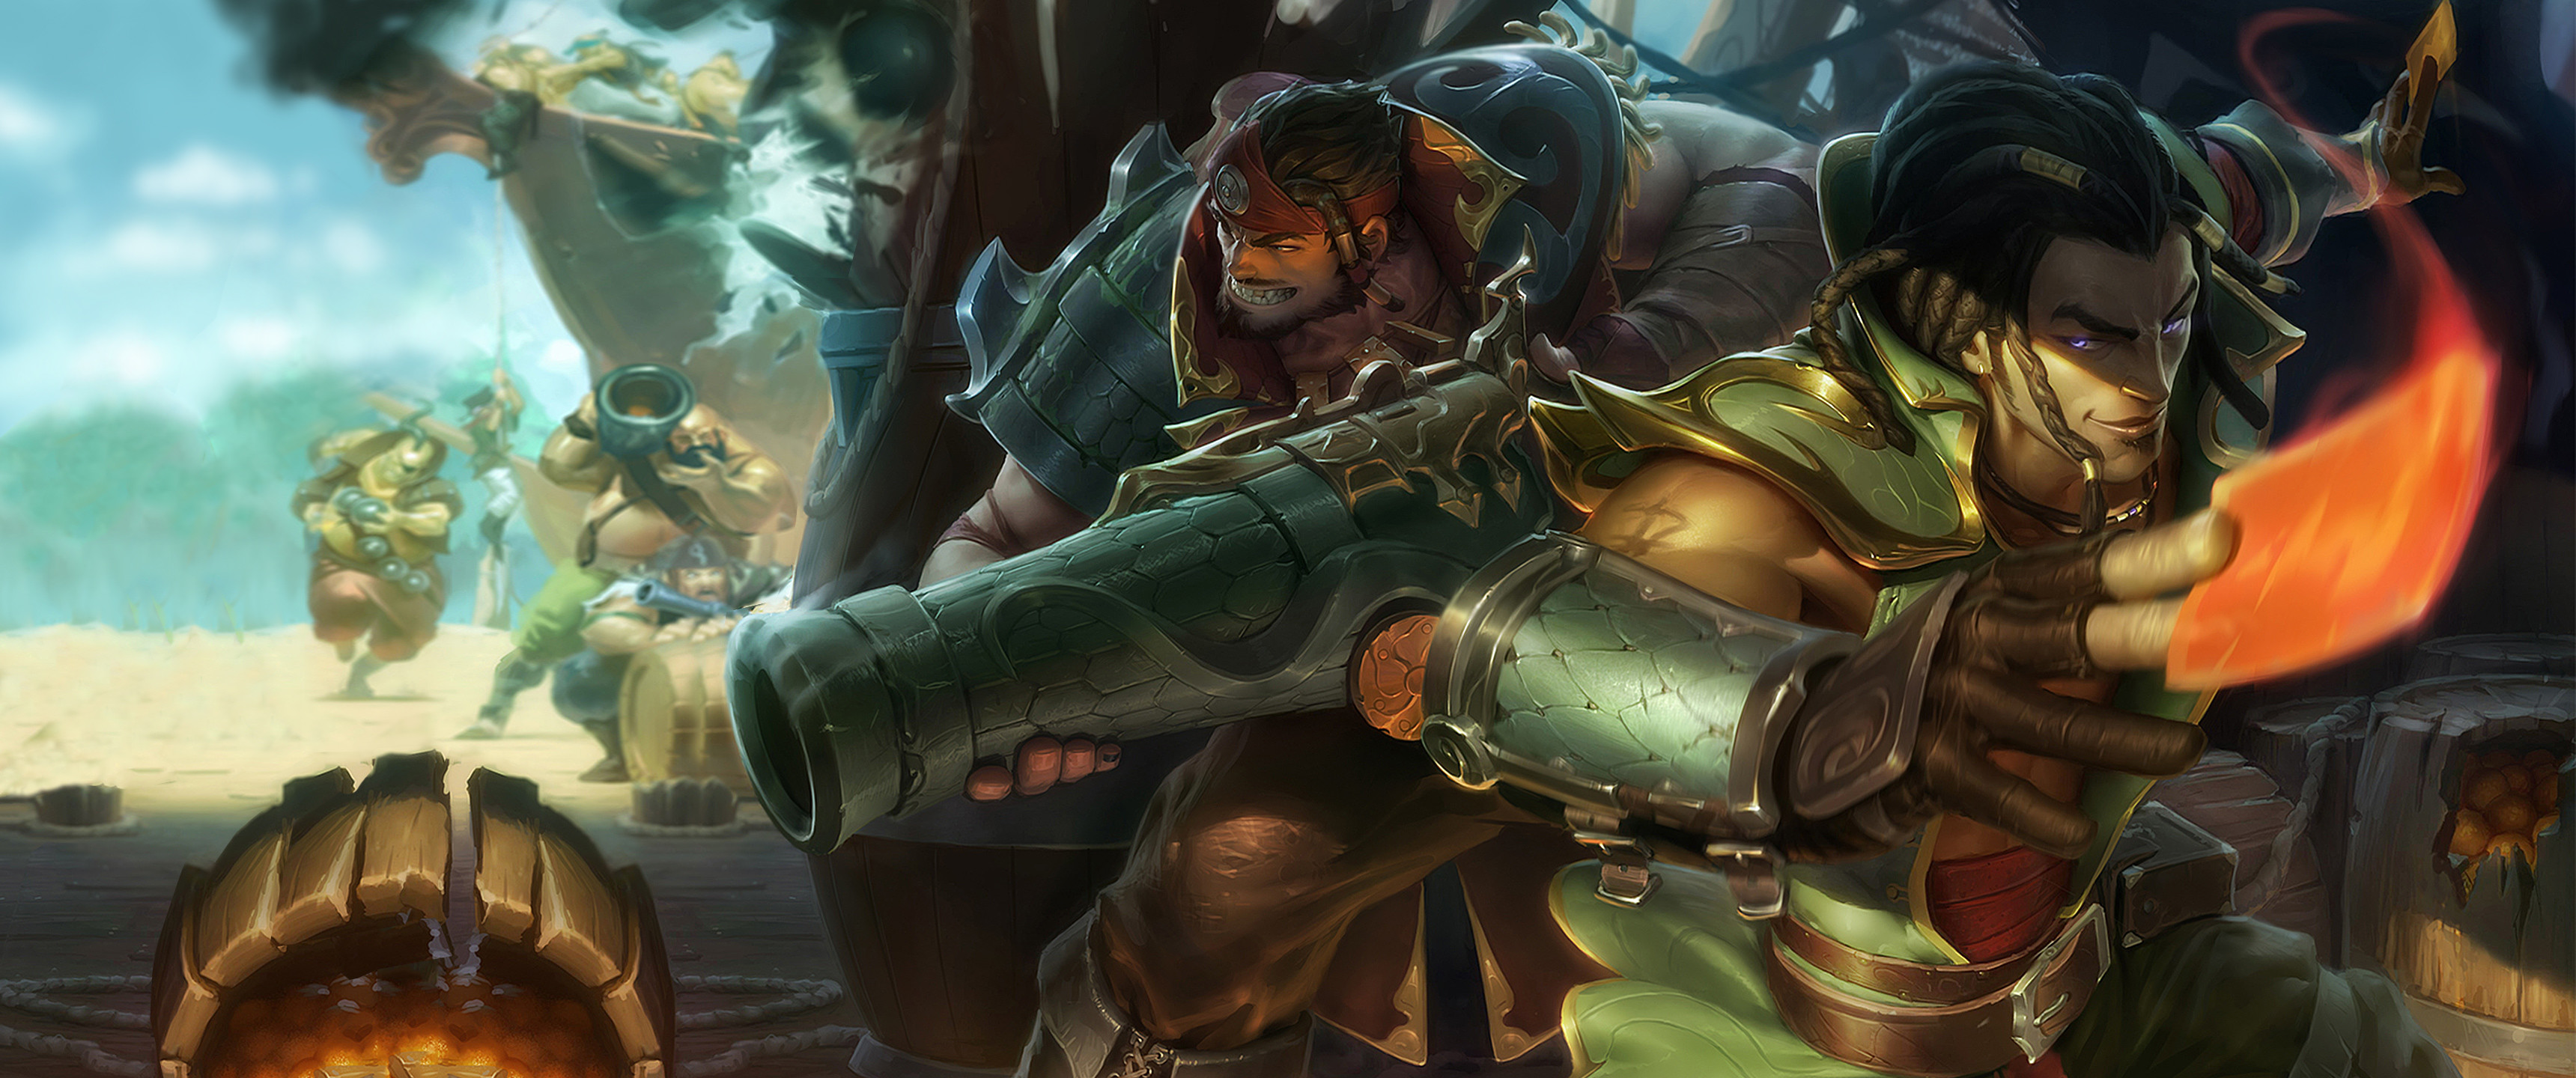 Video Game – League Of Legends Graves (League Of Legends) Pirate Twisted  Fate (